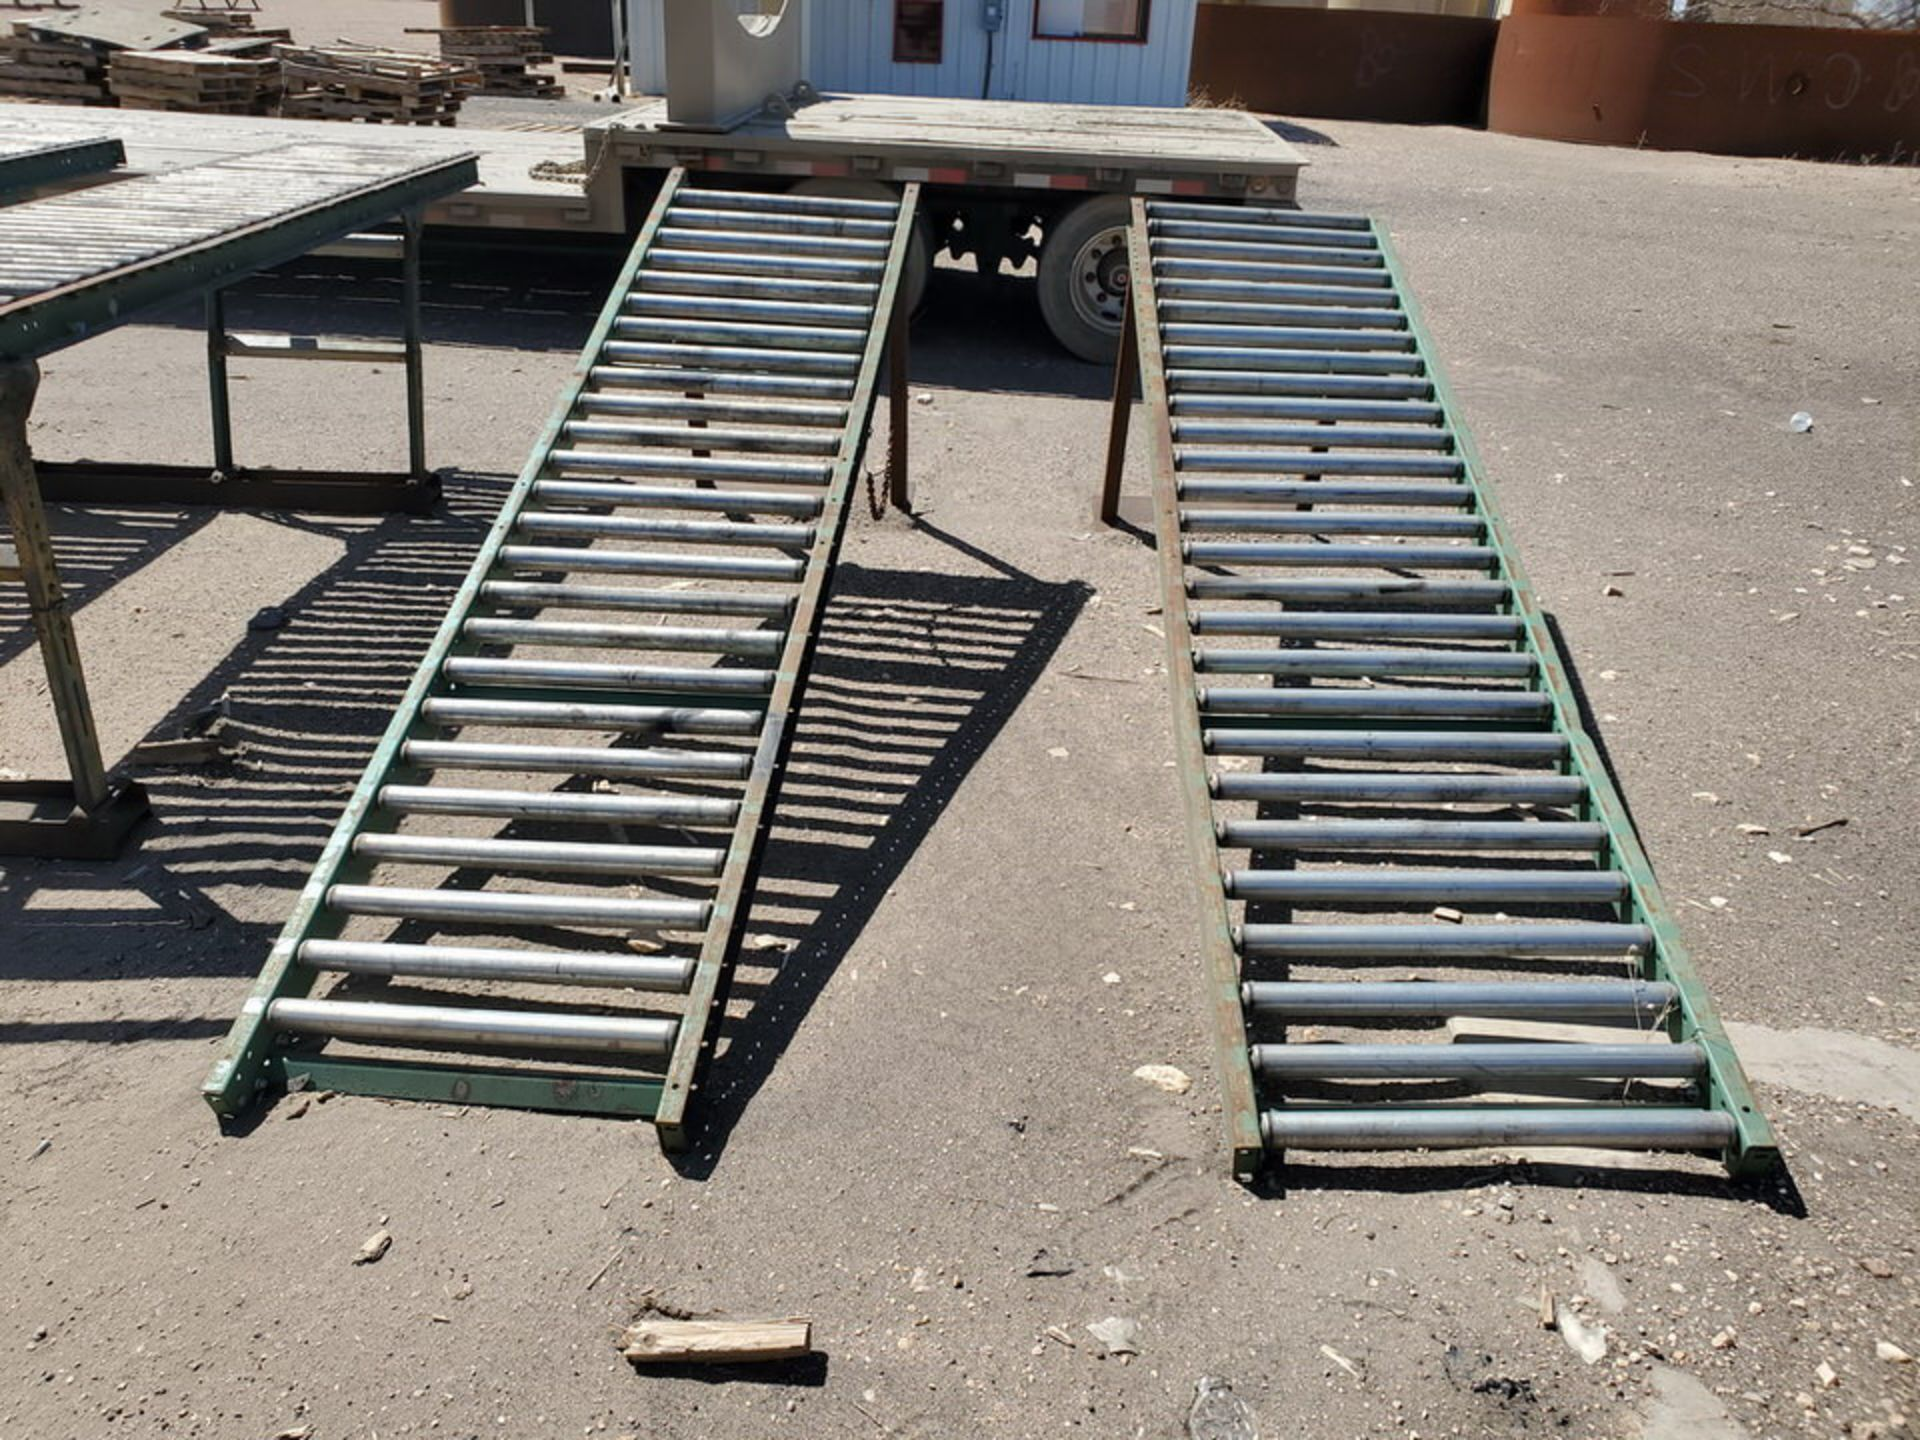 "Ashland & Other (6) Roller Conveyor 10' x 24"" - Image 2 of 7"